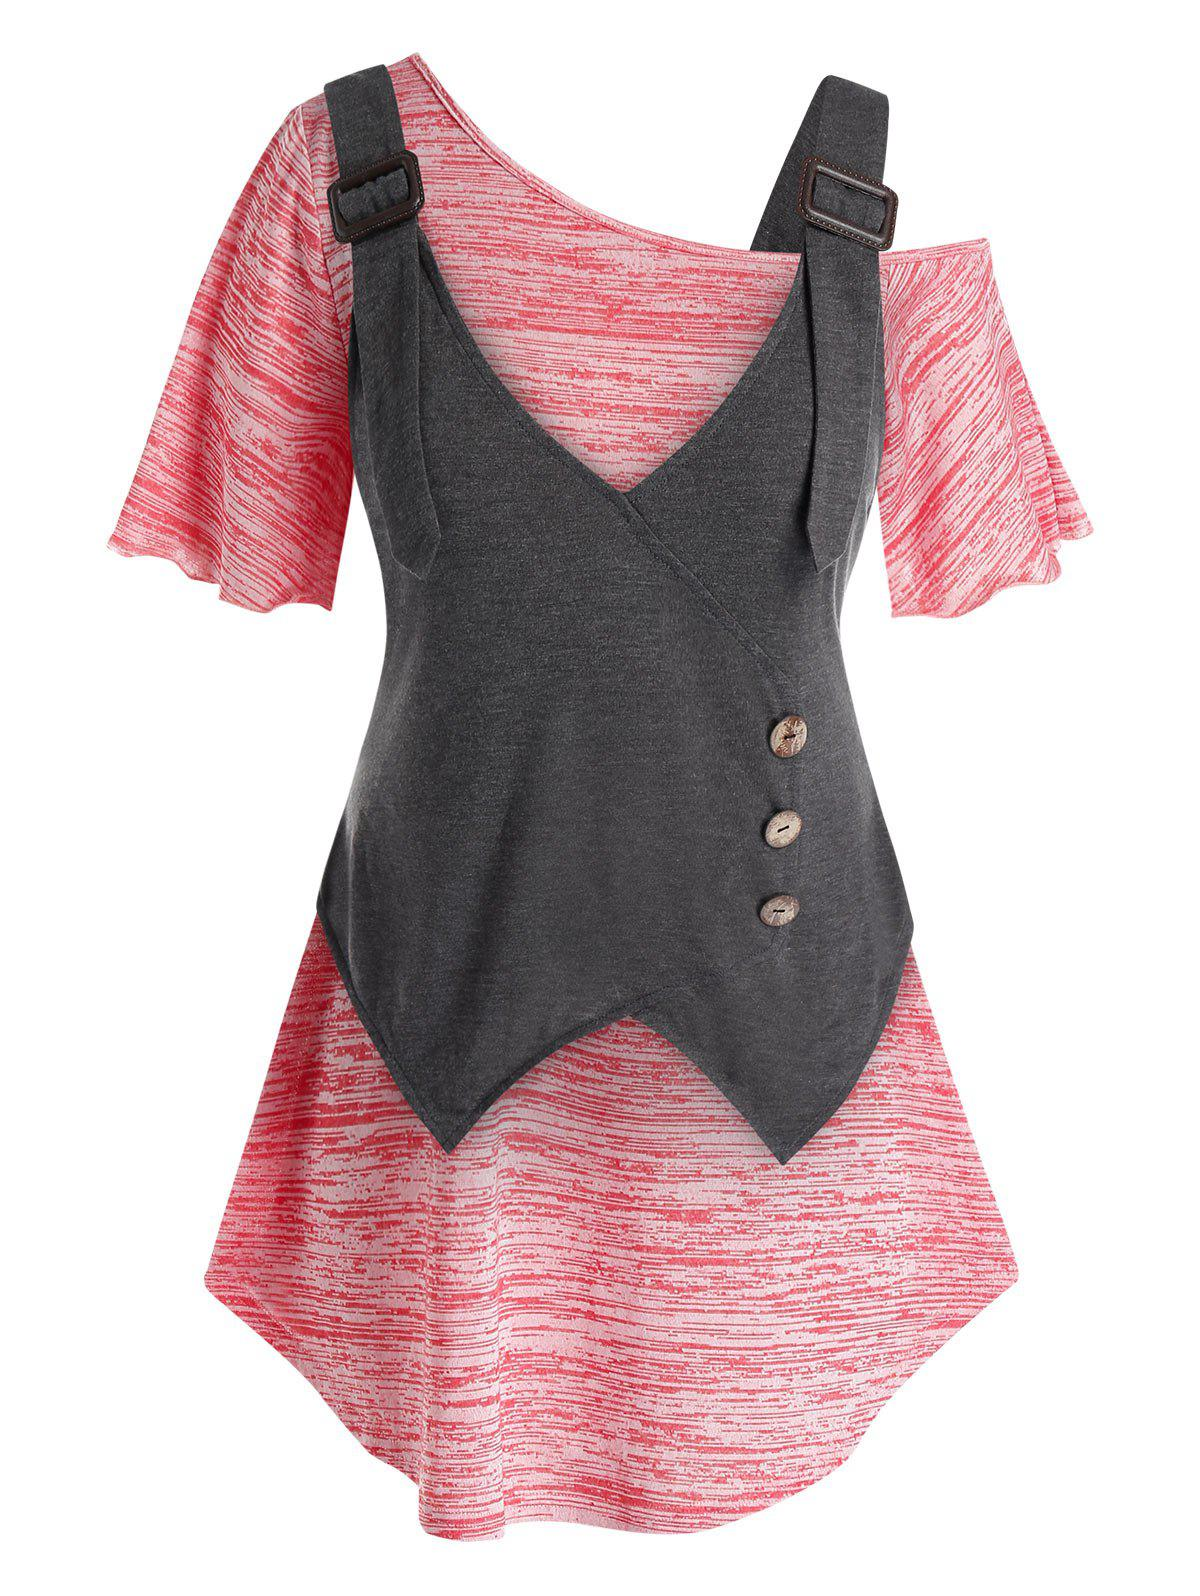 Plus Size Skew Neck Marled T Shirt And Buckles Handkerchief Tank Top Set - BLUSH RED 5X